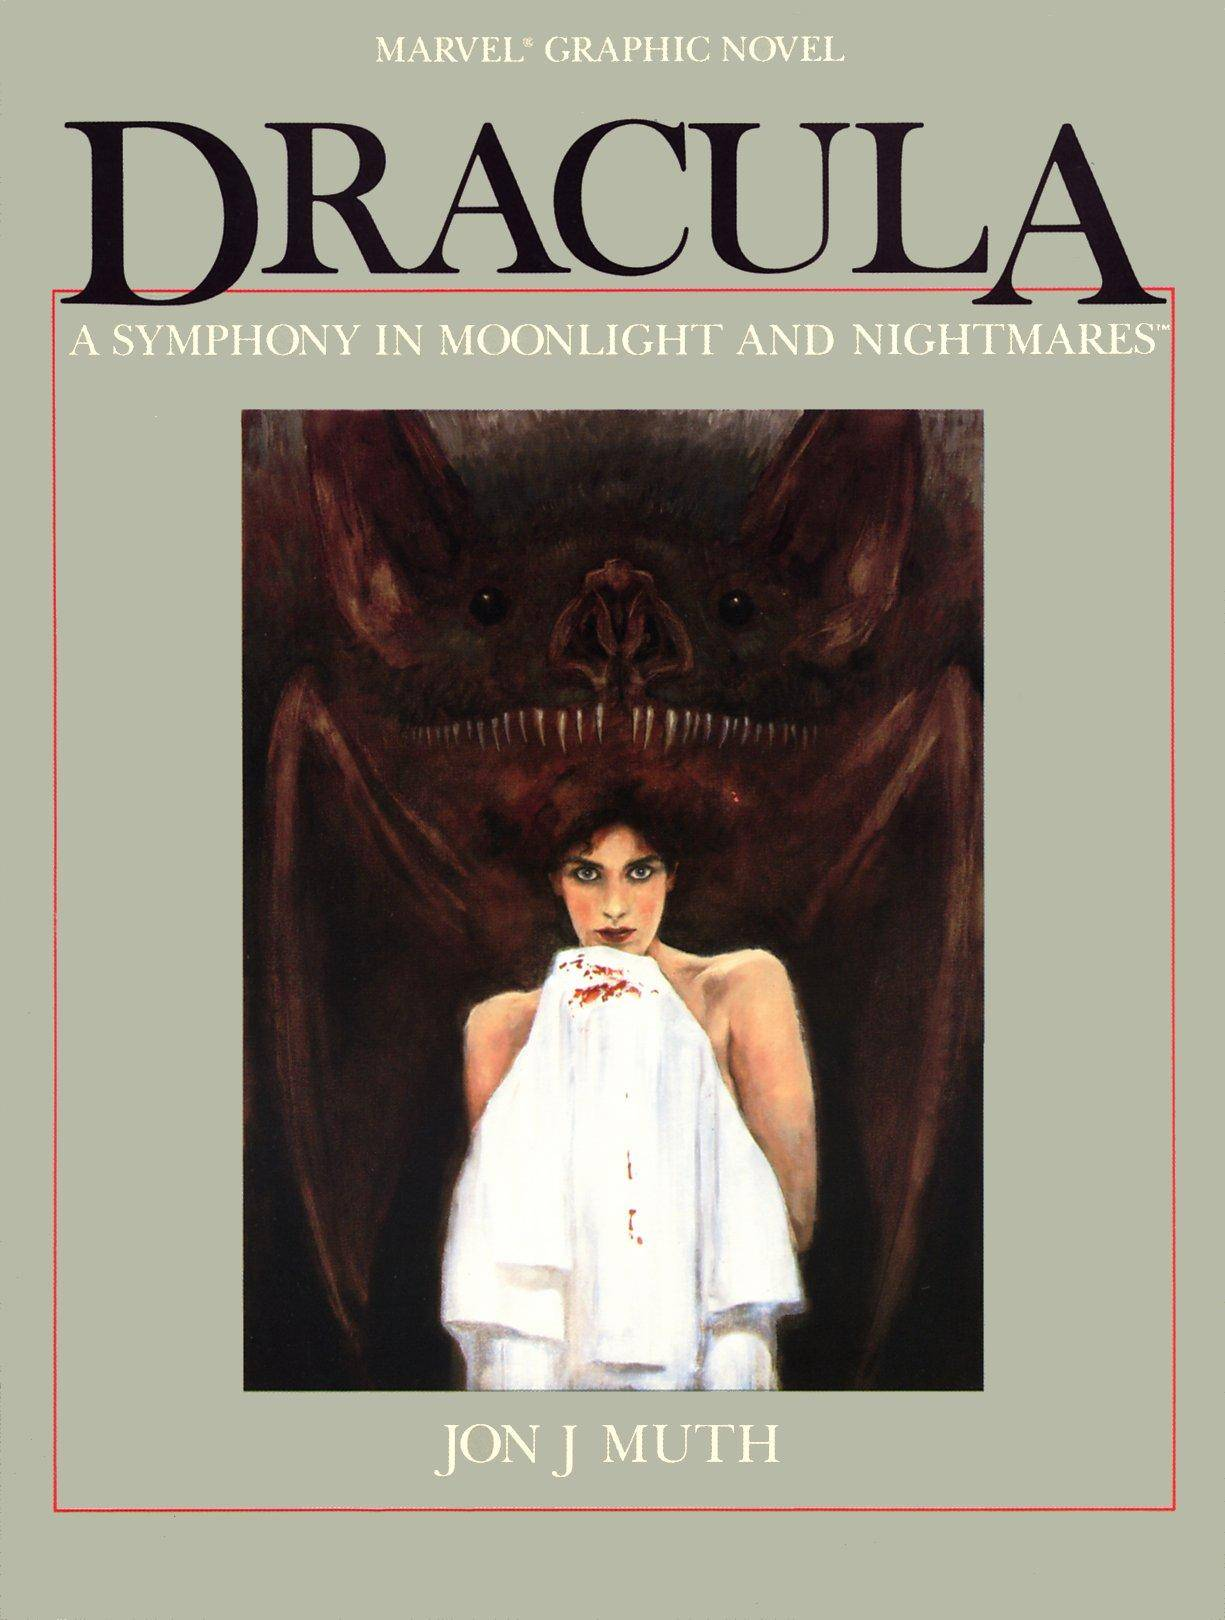 Marvel Graphic Novel 26 - Dracula - A Symphony in Moonlight and Nightmares 1986